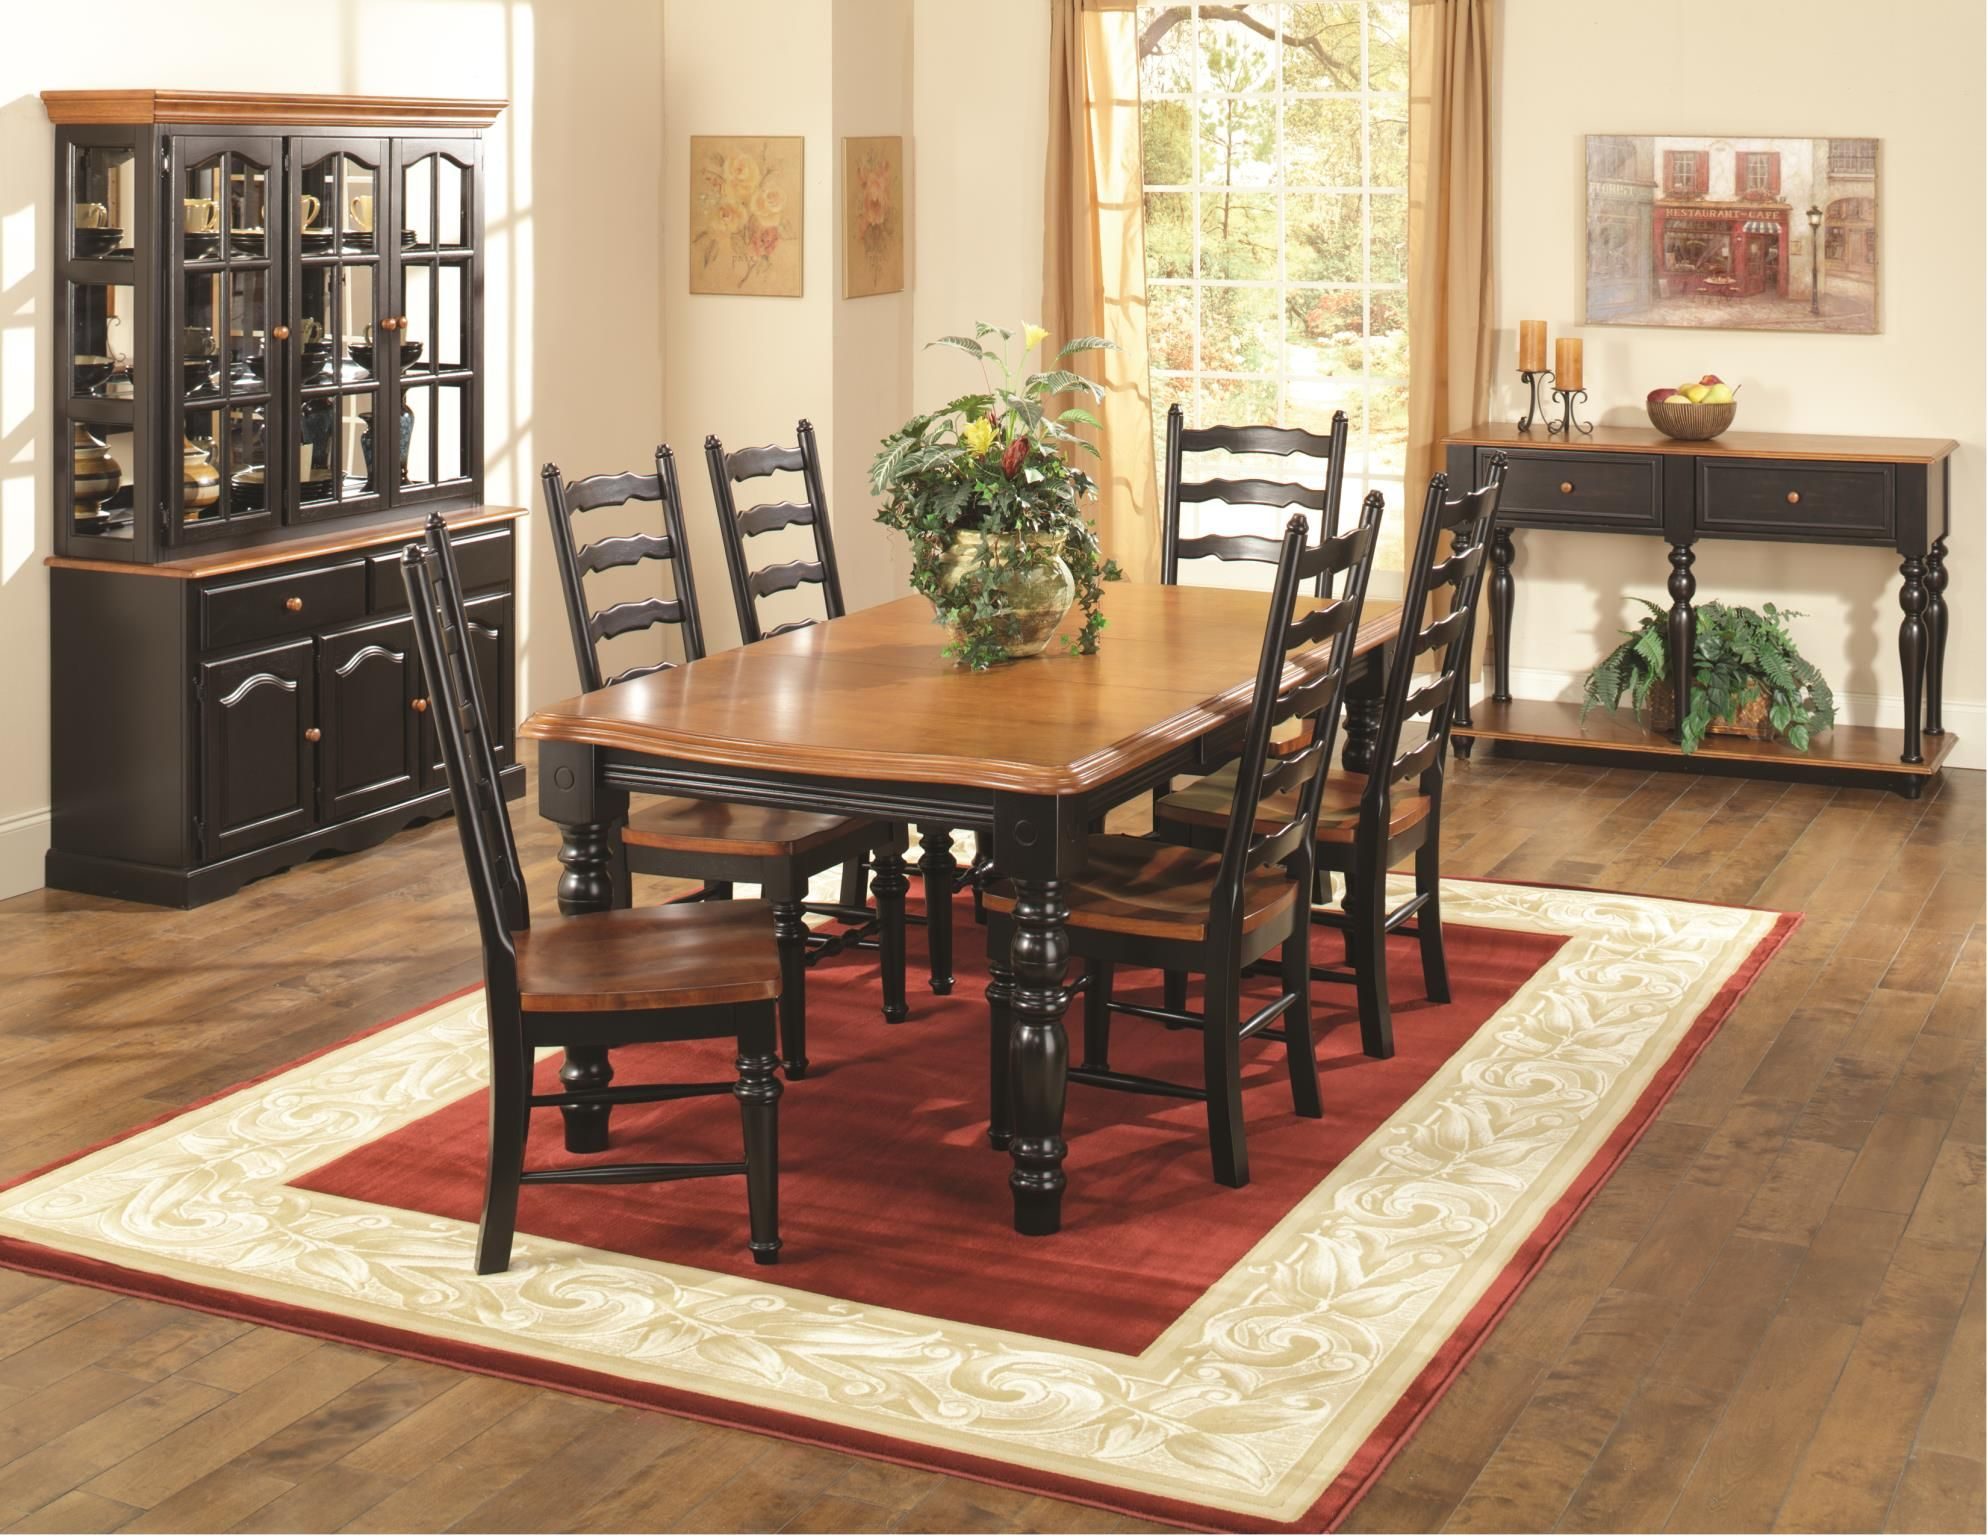 Products Tei Interior Design Dining Room Furniture Dining